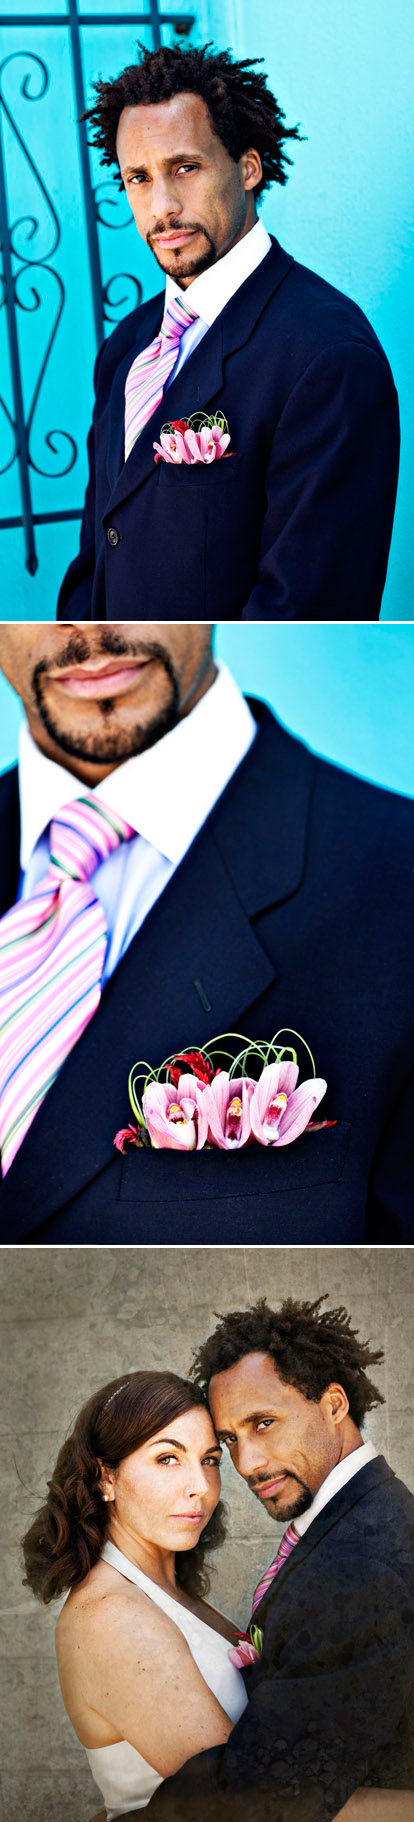 Men's wedding floral pocket square by Its A Blooming Business, groom's boutonniere alternative, photo by Joy Marie Photography